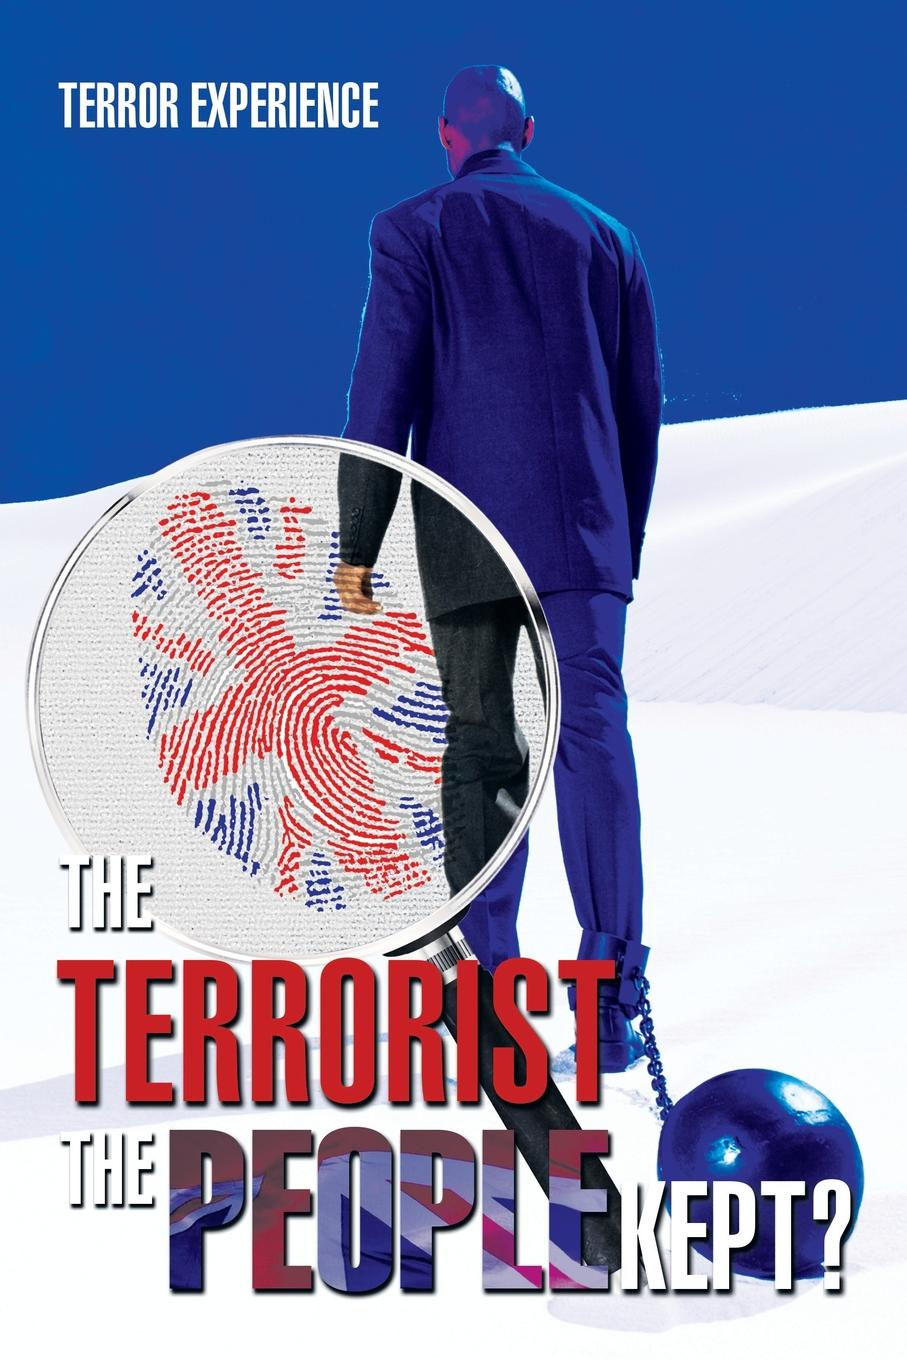 Terror Experience The Terrorist the People Kept? terrorist hunter